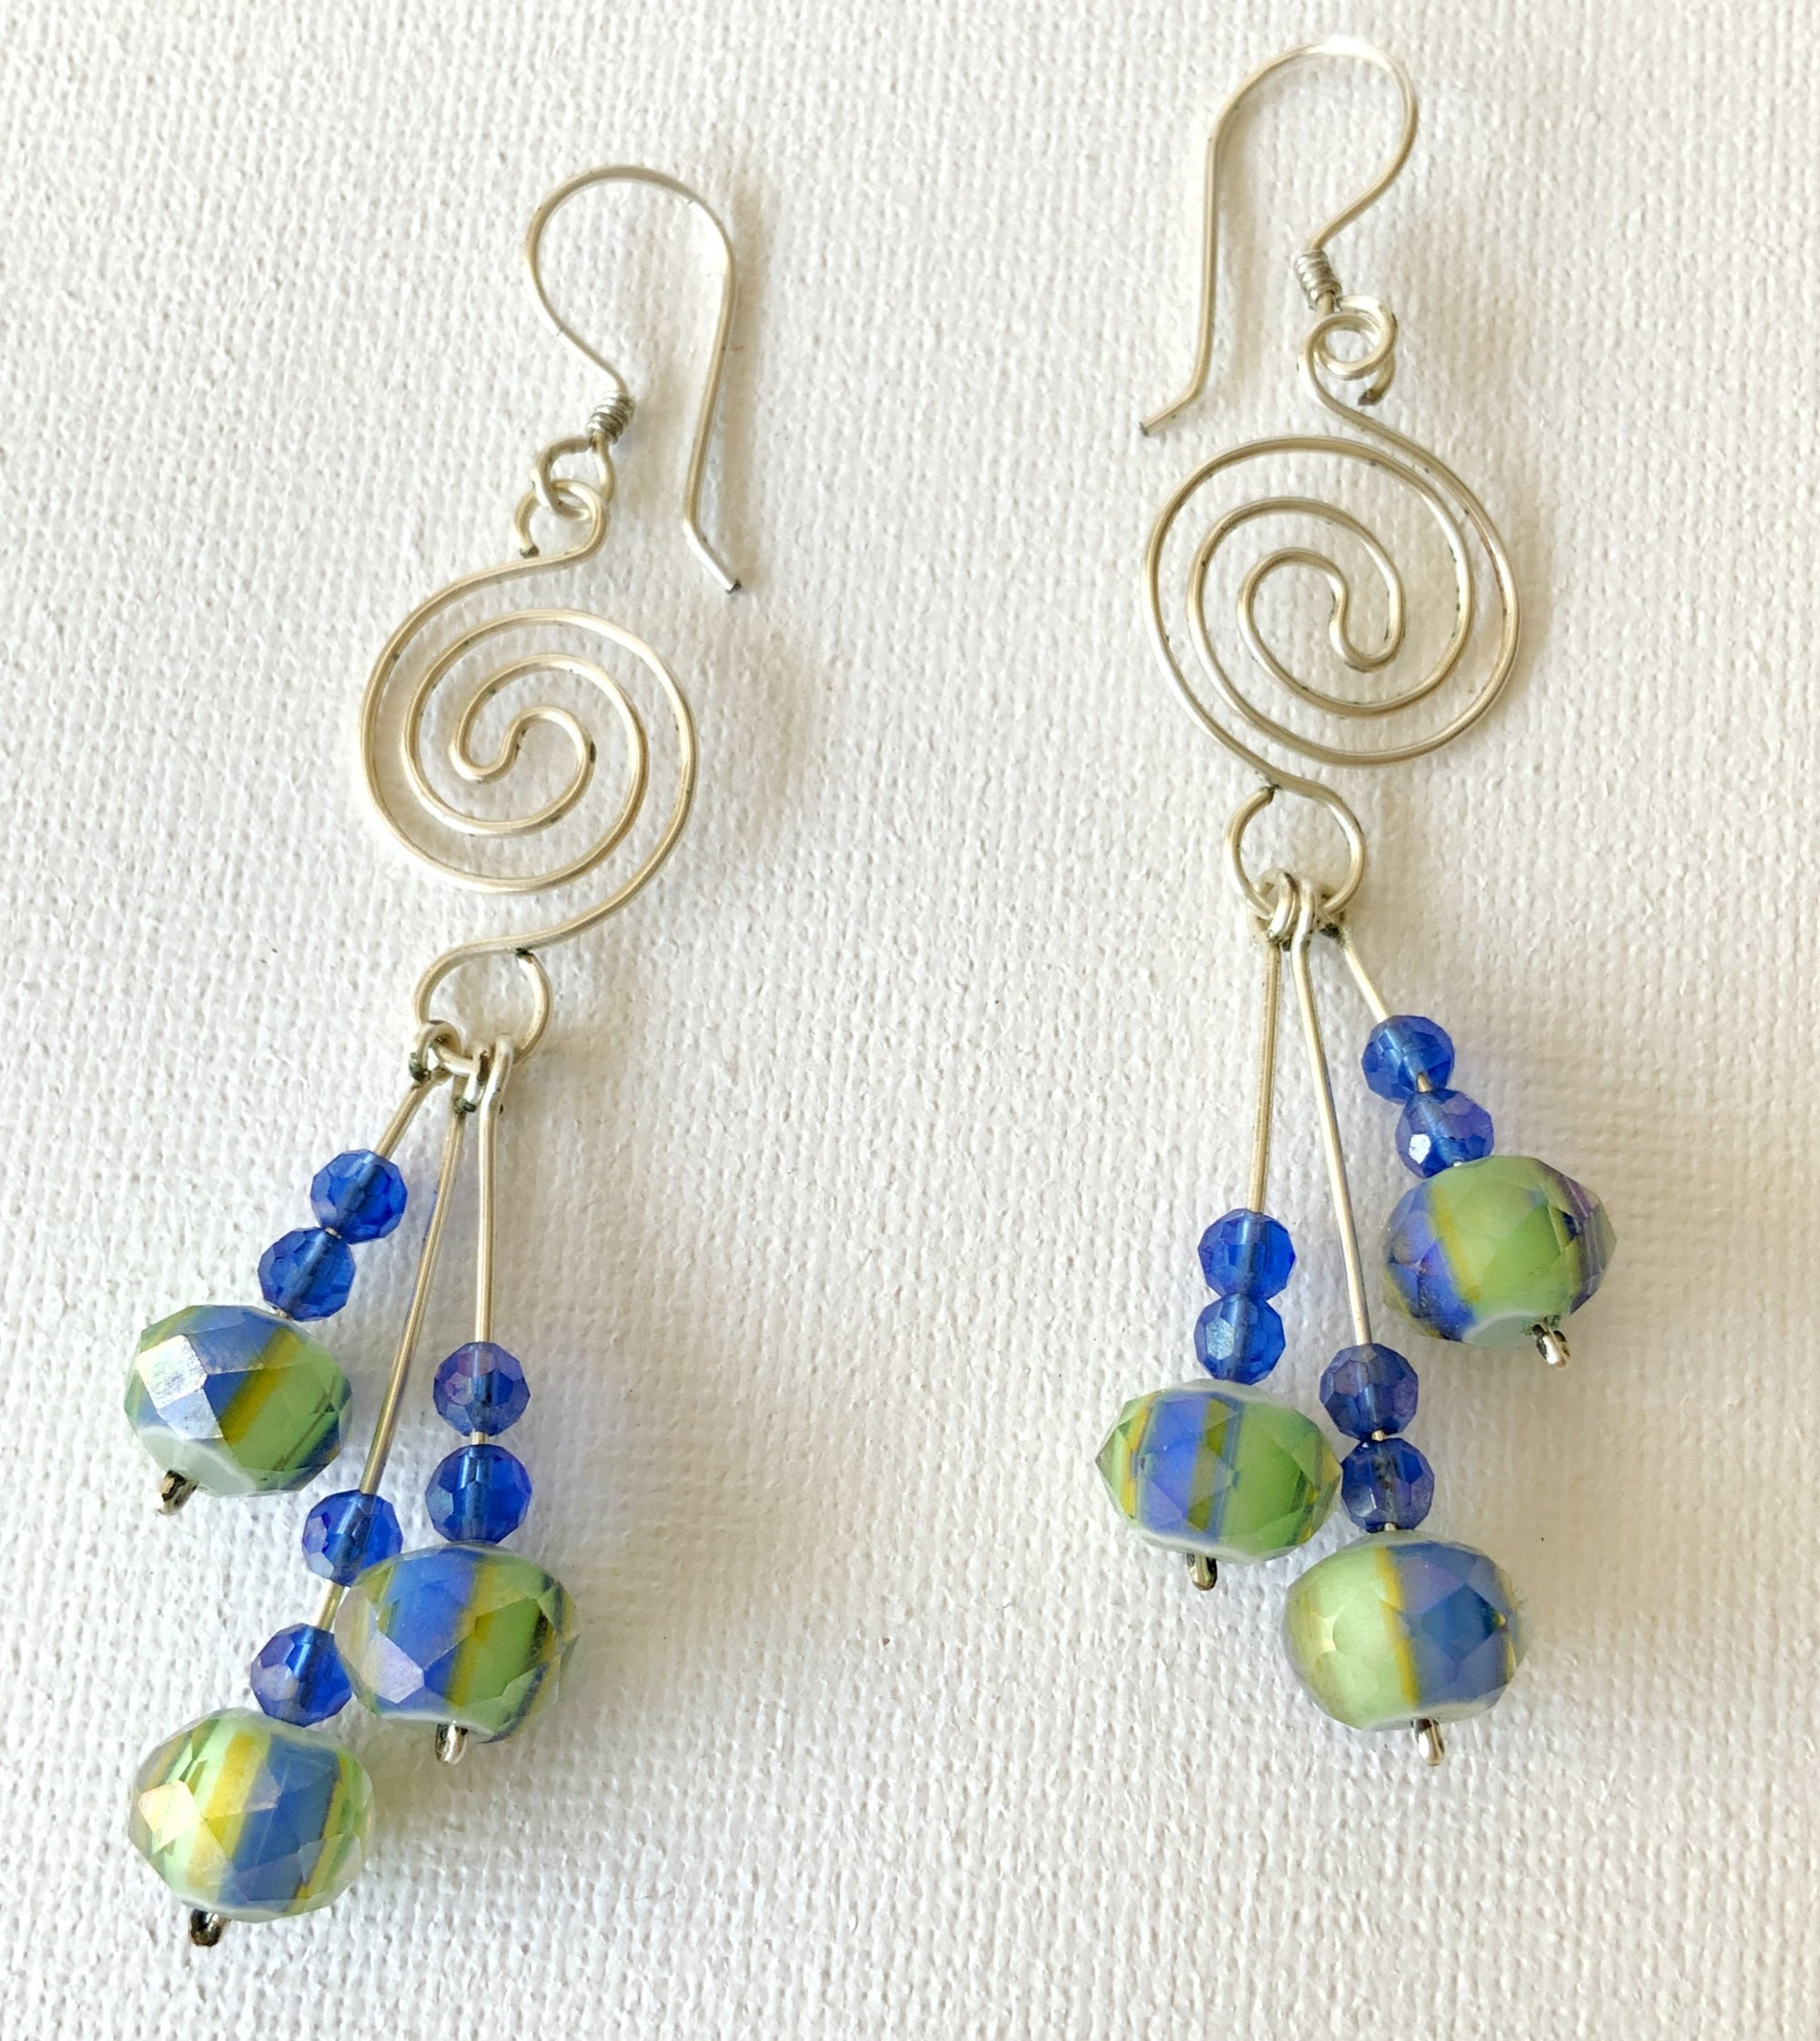 Multiple Drops Earrings with Spiral Wire Setting and French Hook